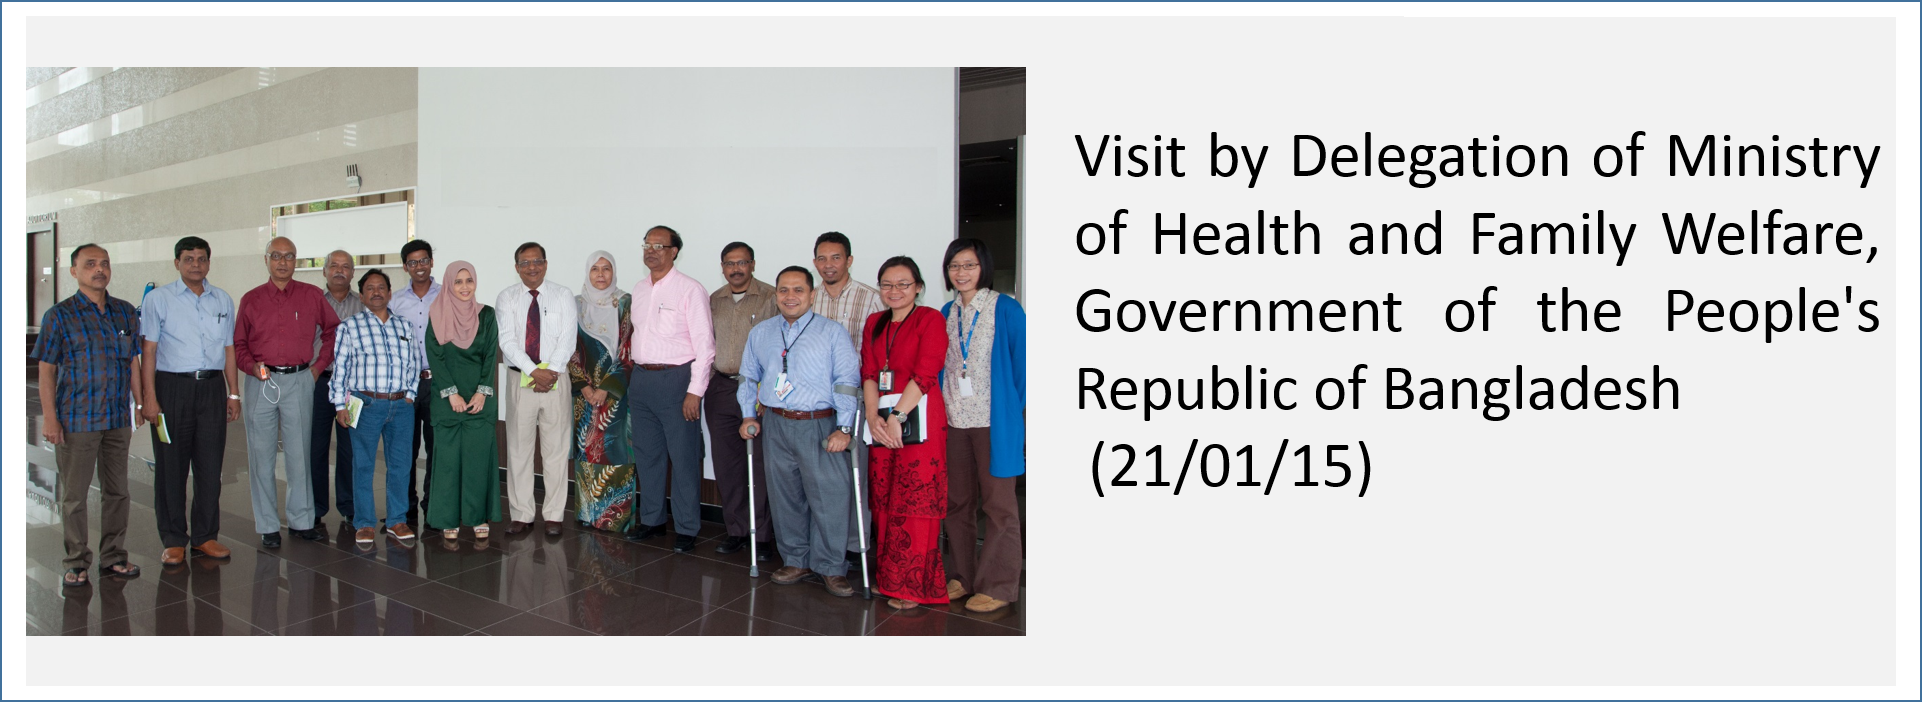 Visit by Delegation of Ministry of Health and Family Welfare,  Government of the People's Republic of Bangladesh